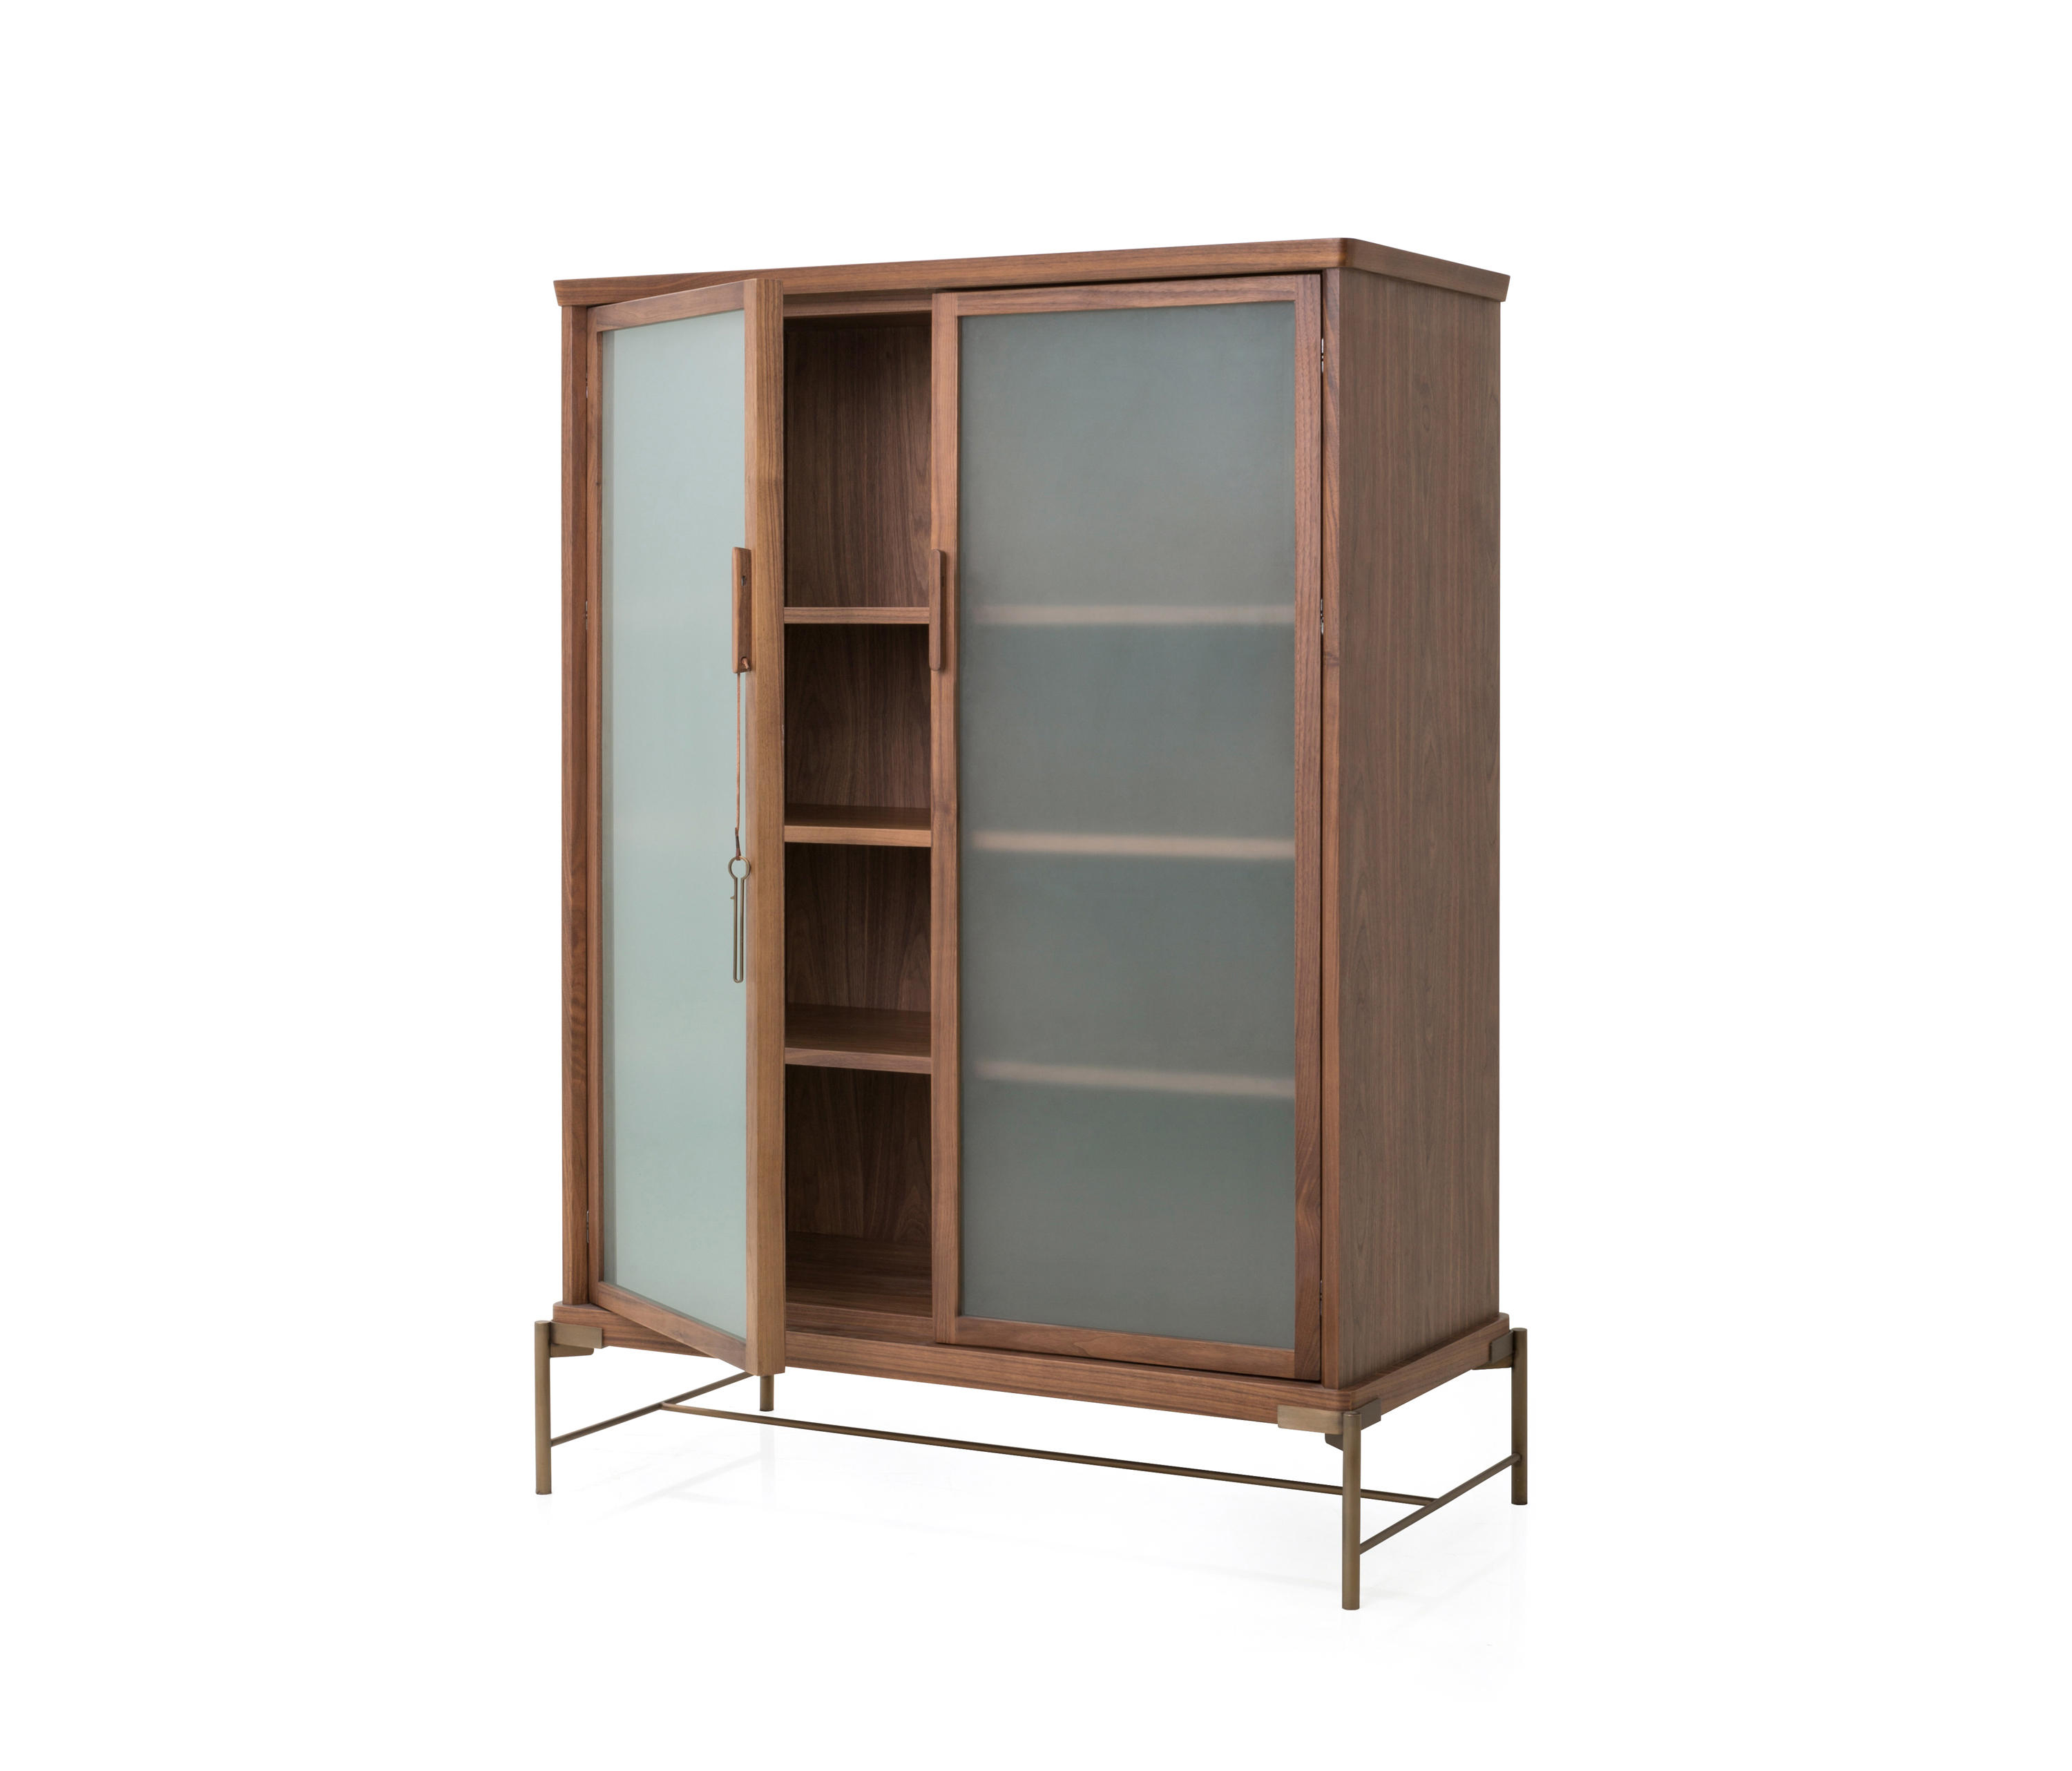 Dowry Cabinet Iii Frosted Glass Display Cabinets From